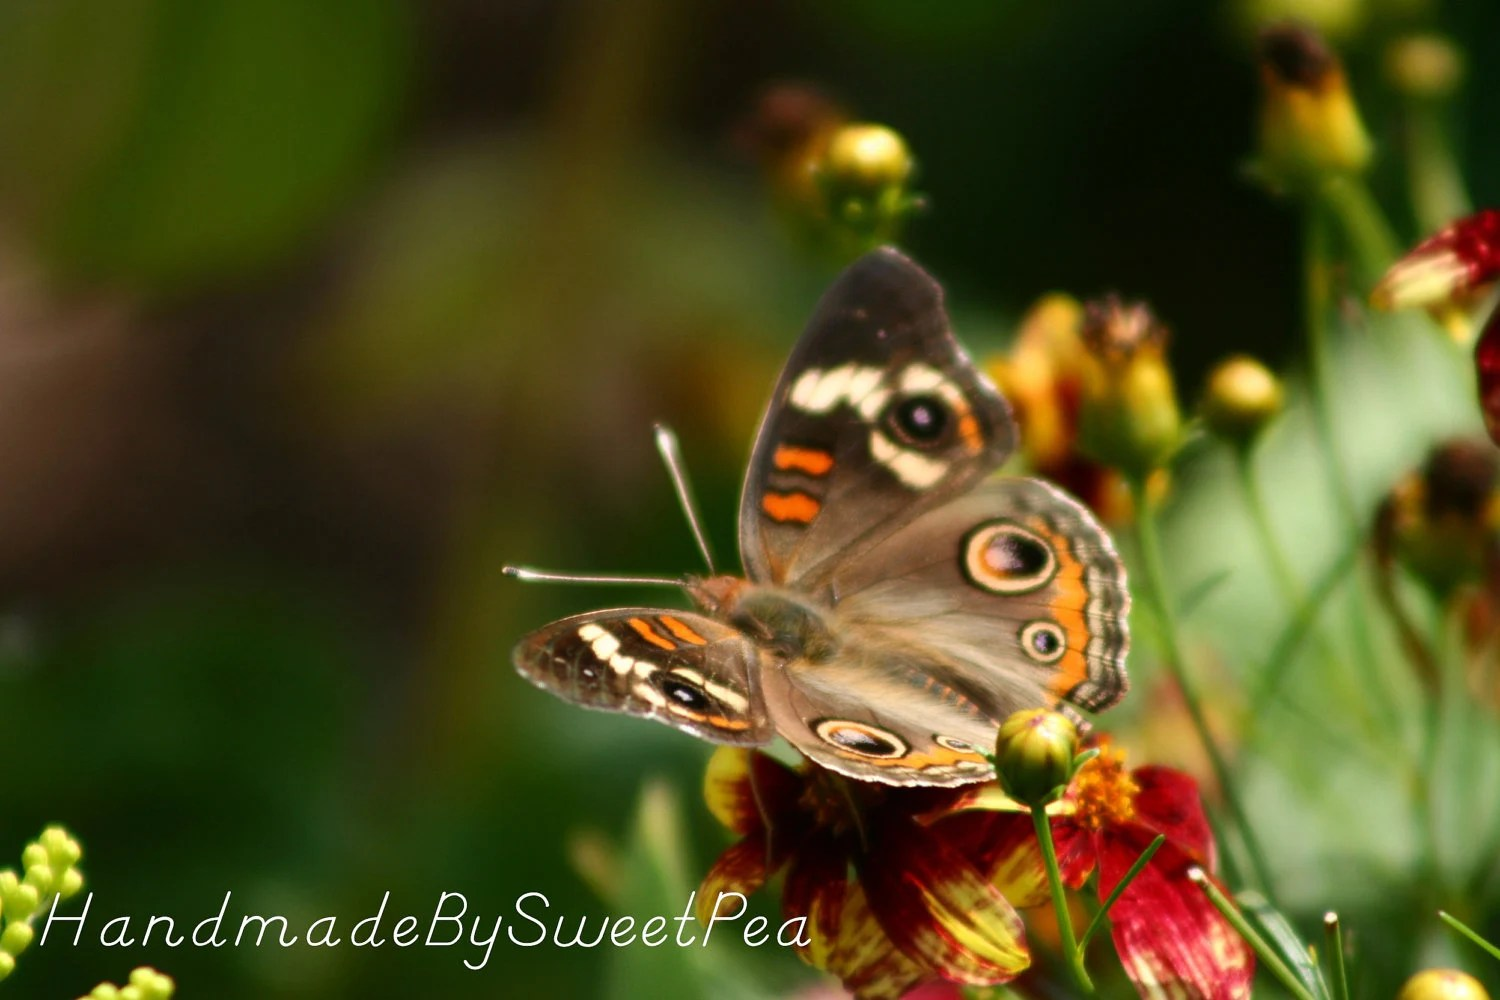 Moth, Insect, Flowers, Outdoors, Nature, Zoom, Fall, Orange, Brown, Home Decor, Photography